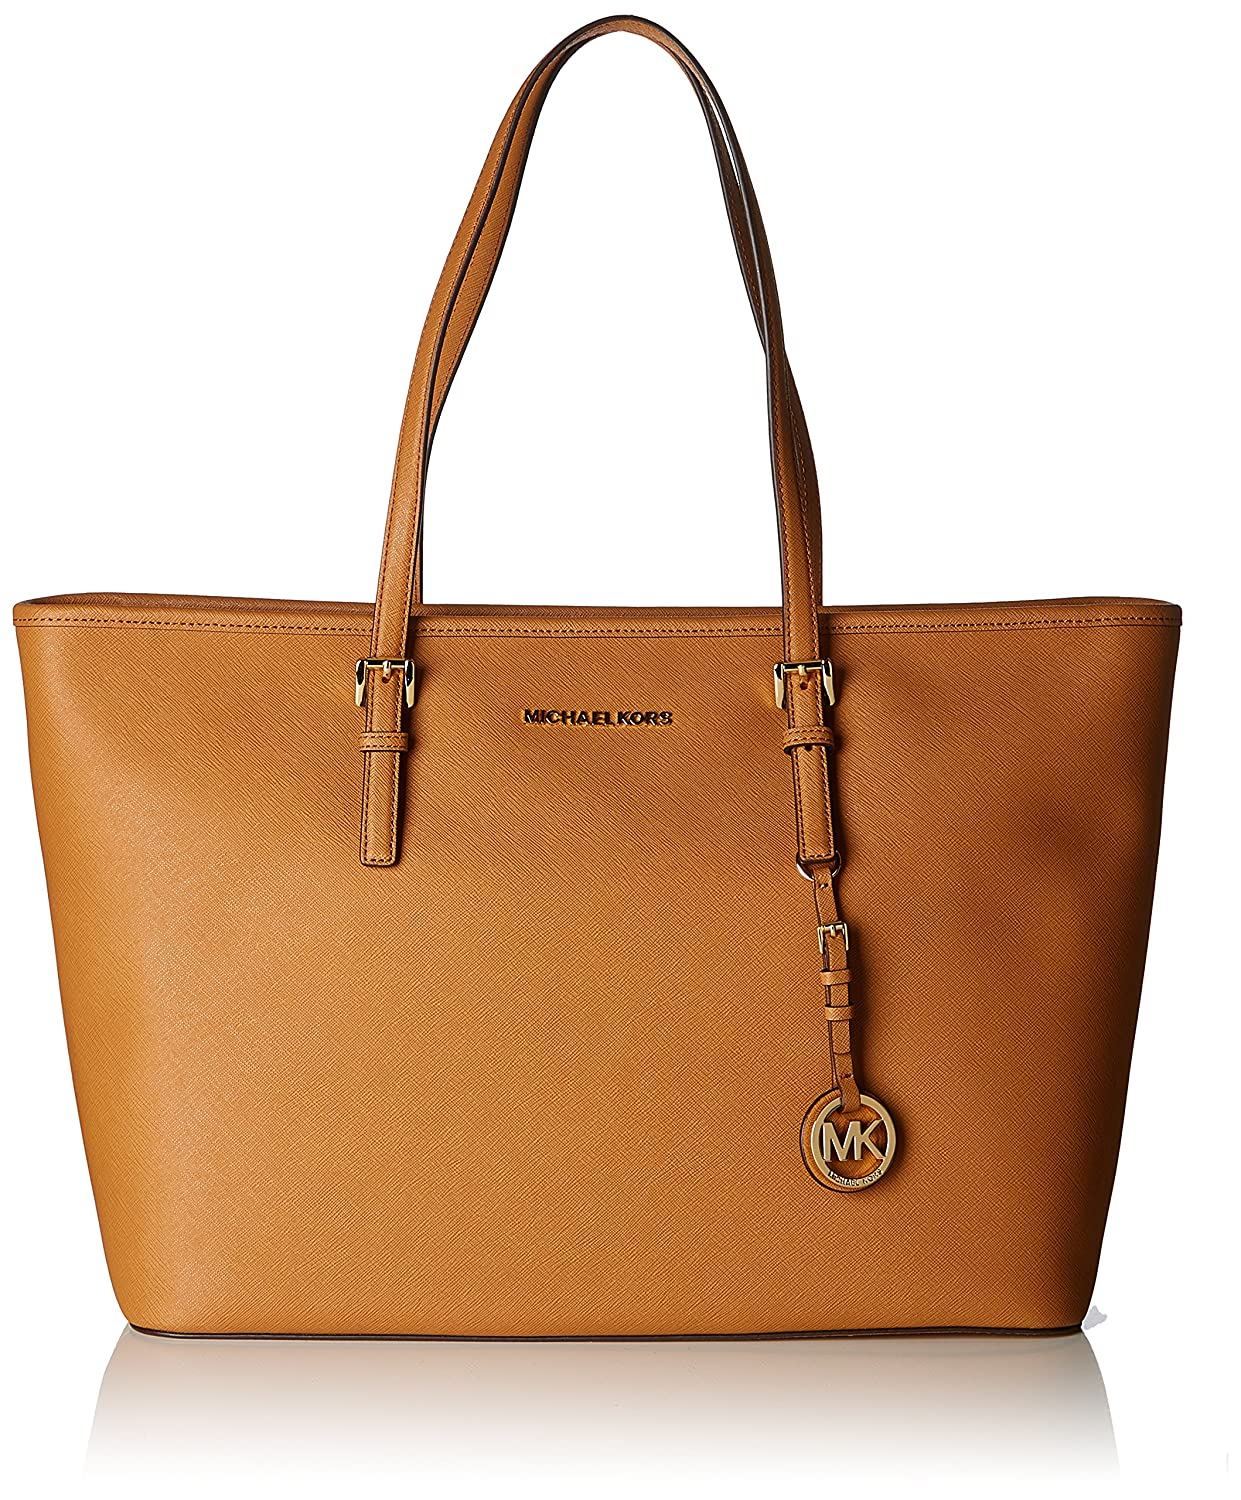 Michael Kors Jet Set Travel, Borsa Tote Donna, 12.7x29.2x43 centimeters (W x H x L)